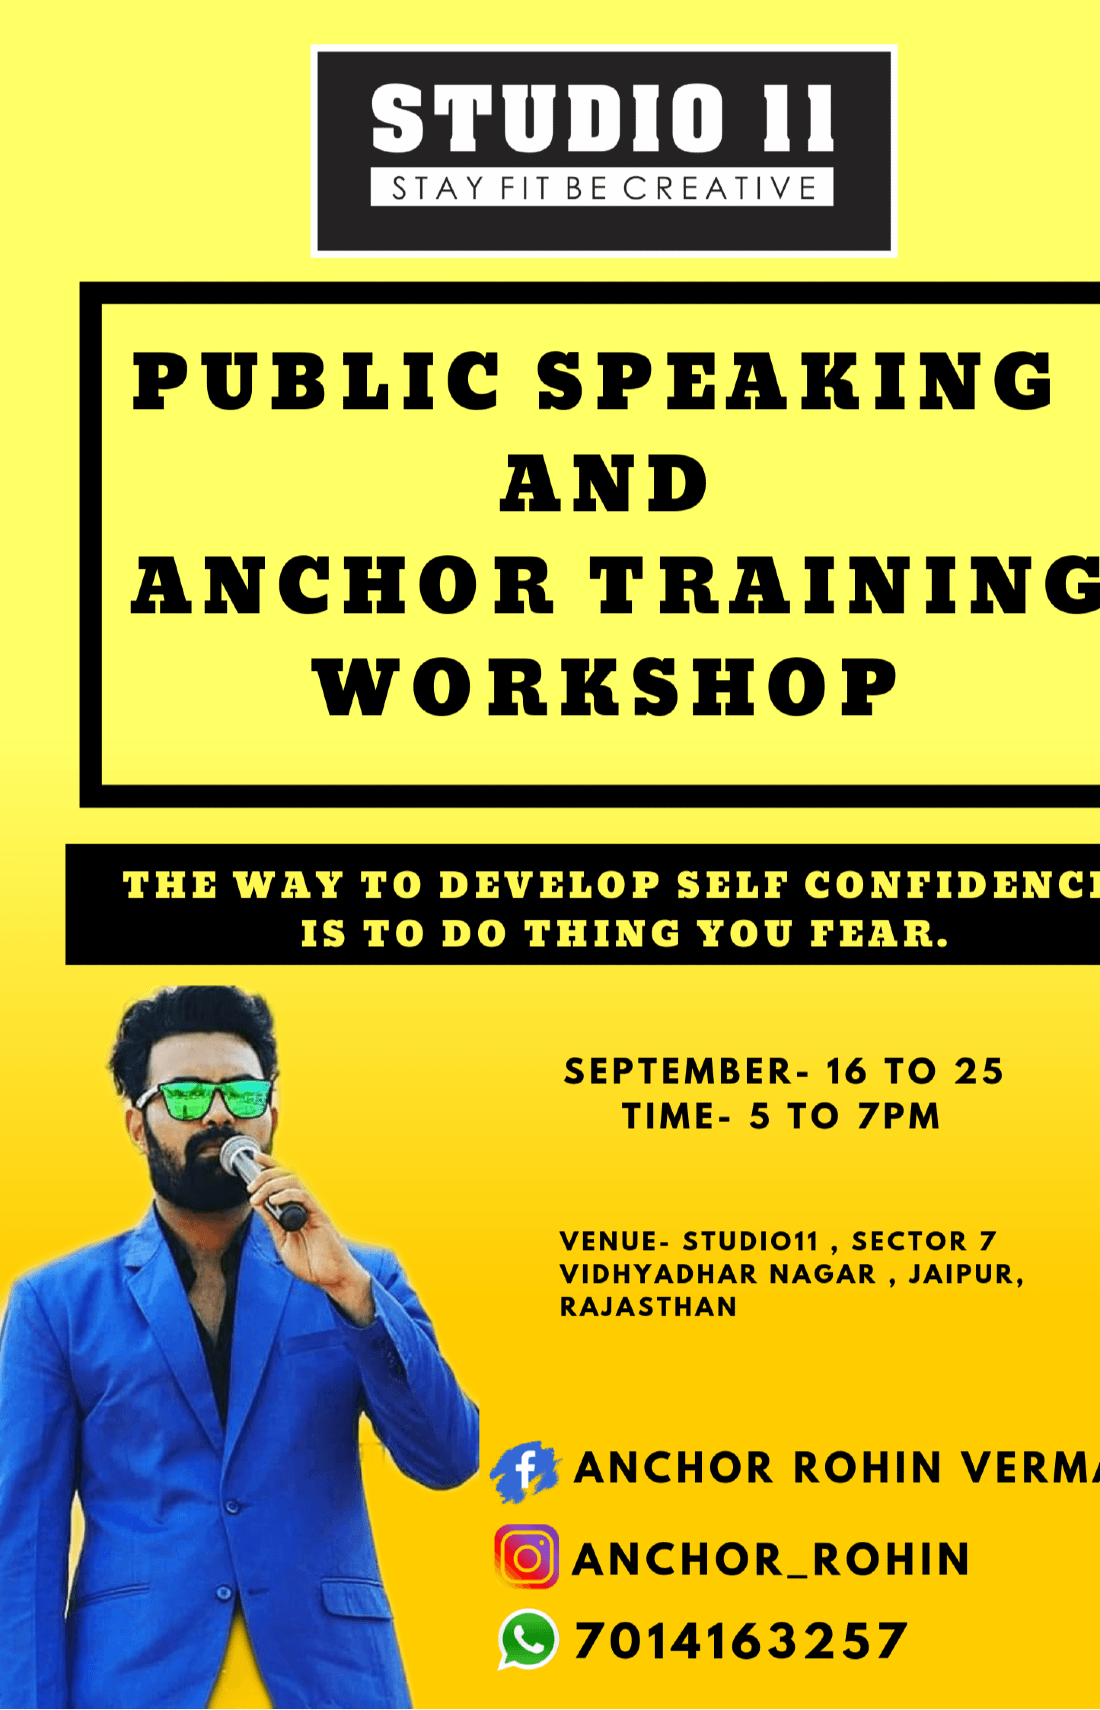 Public Speaking And Anchor Training workshop at Vidhyadhar